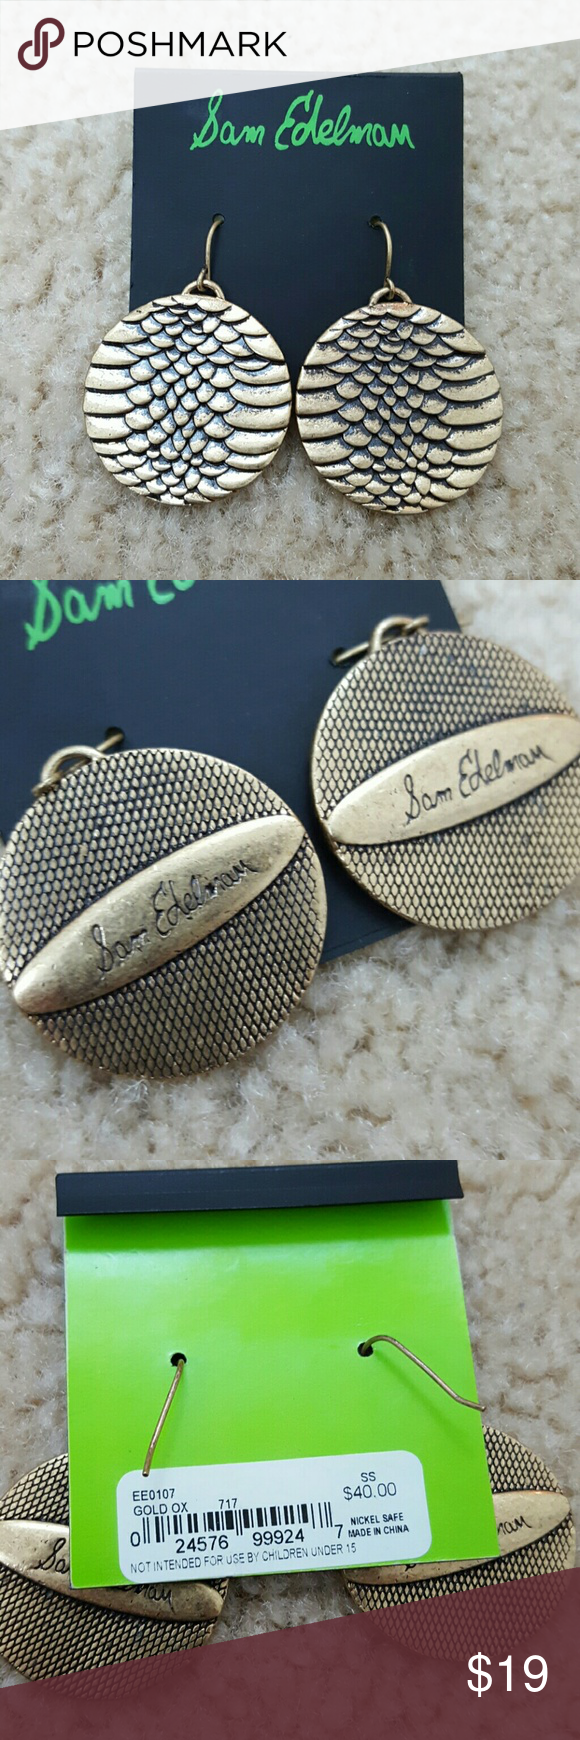 Sam Edelman Earrings Sam Edelman gold tone metal earrings. Nice pantina brings out the reptile skin texture.   Nice quality. 1.25 inch circles Sam Edelman Jewelry Earrings